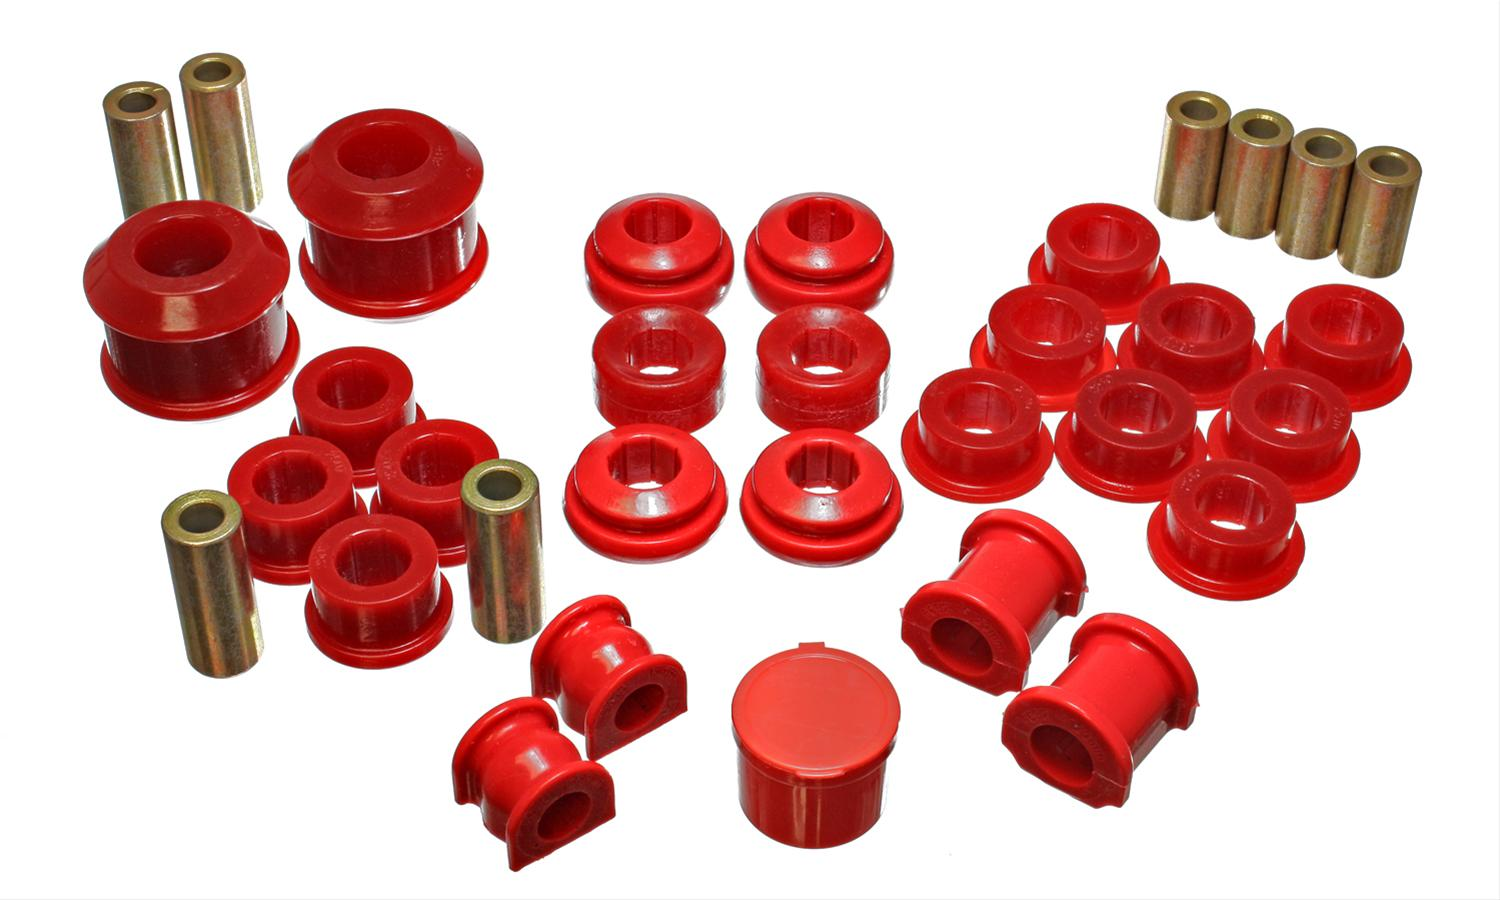 ... rsx energy suspension hyperflex bushing kits 16 18111r free shipping on  orders over 99 at summit